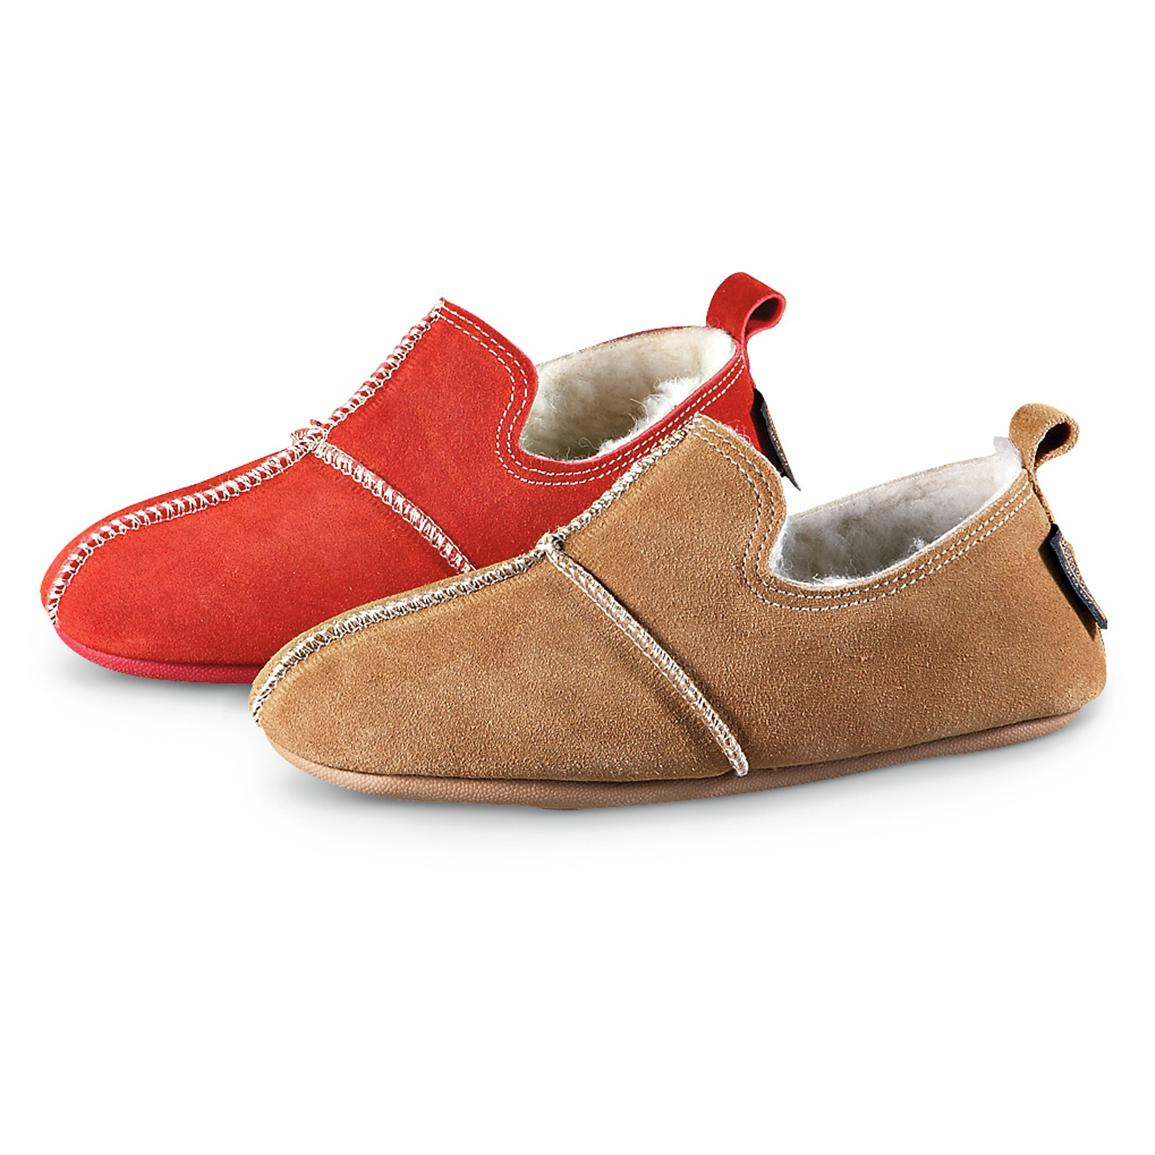 Women's Guide Gear® Joanna Slip-on Booties, Red and Chestnut